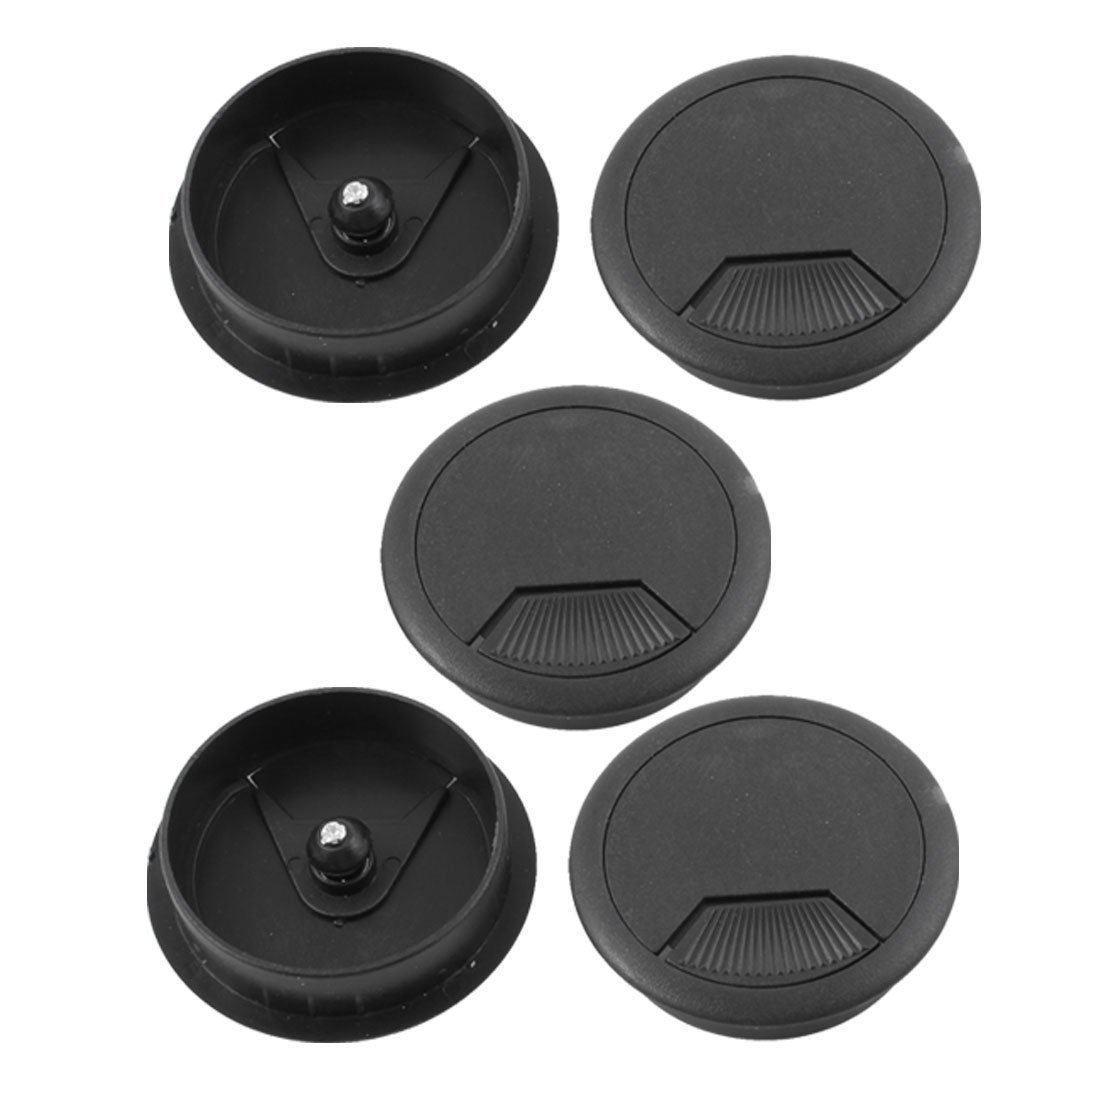 uxcell a13092500ux0347 Plastic Desktop Computer 80mm Grommet Cable Hole Cover Black Plastic Pack of 3